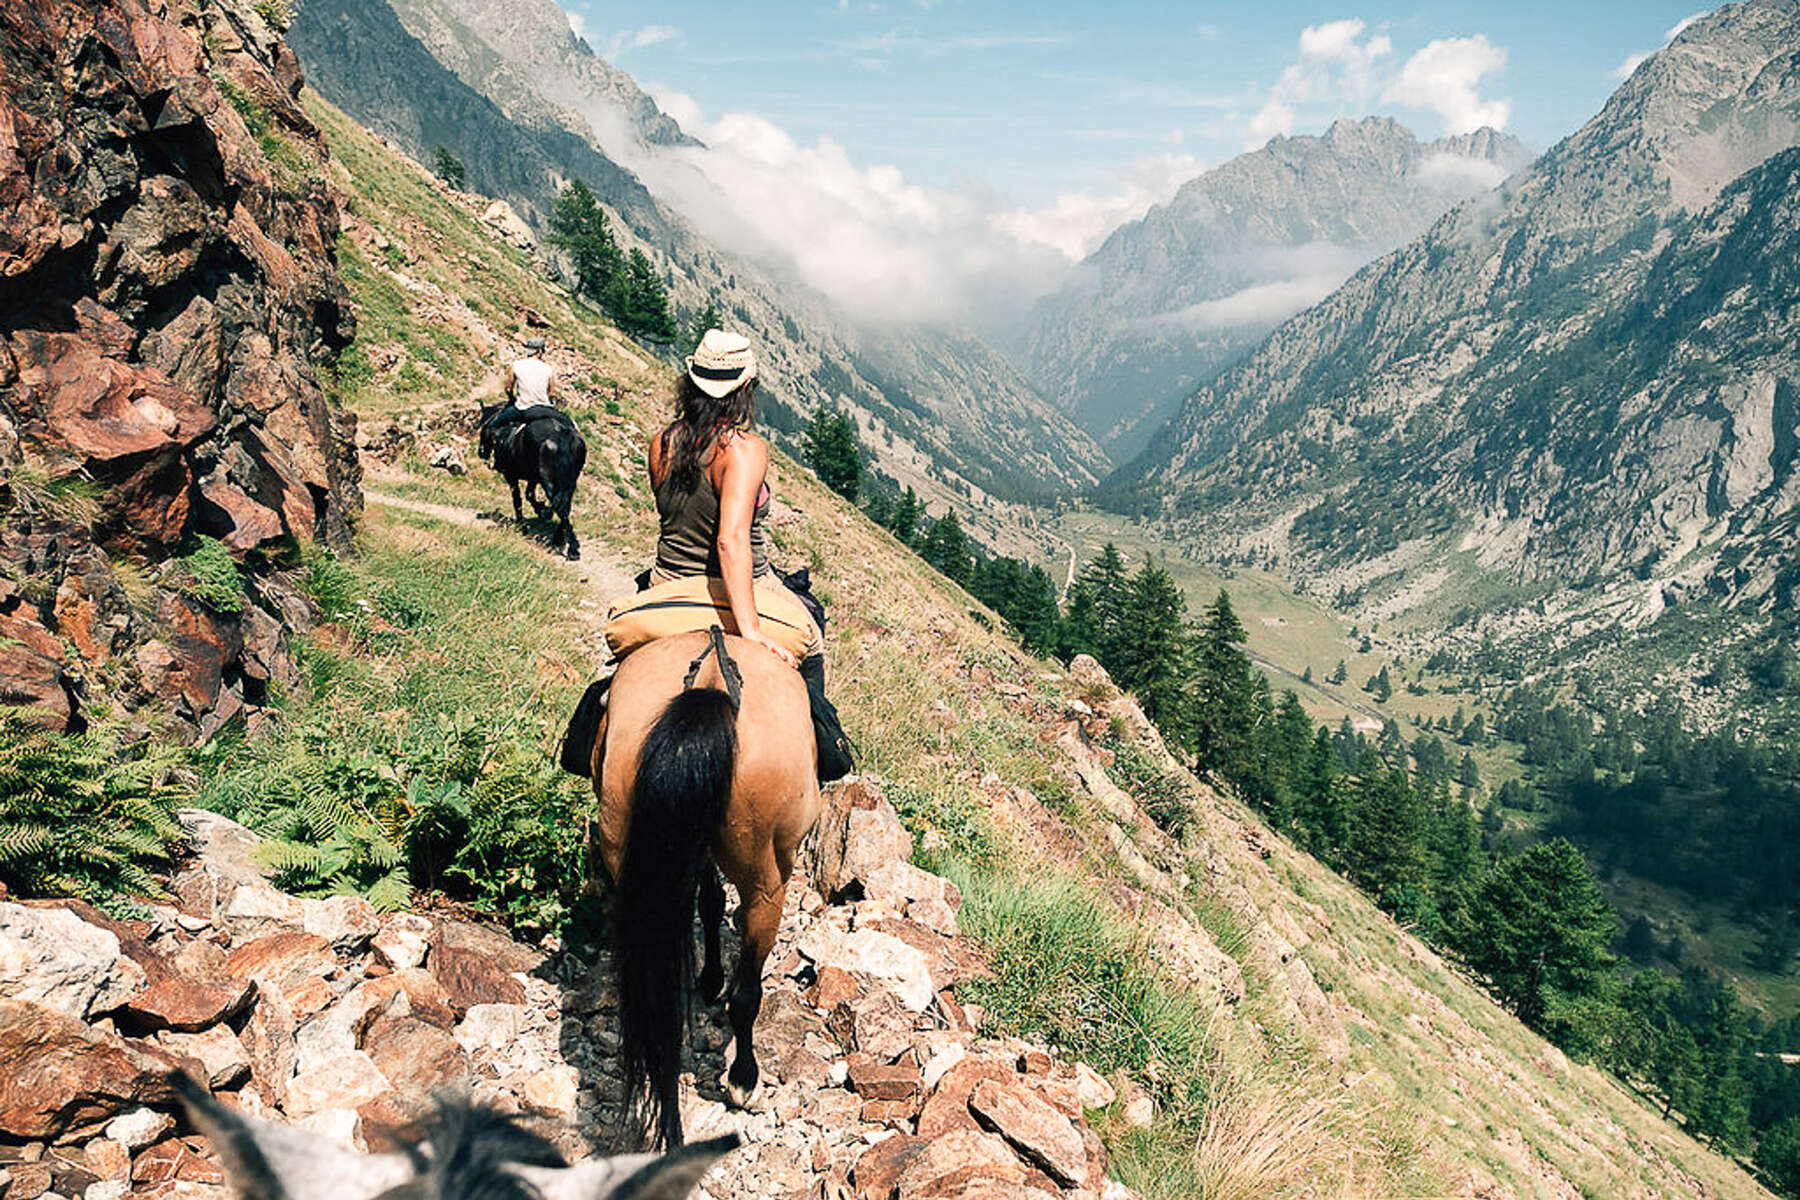 Rider on an adventure horseback trail in the mountains